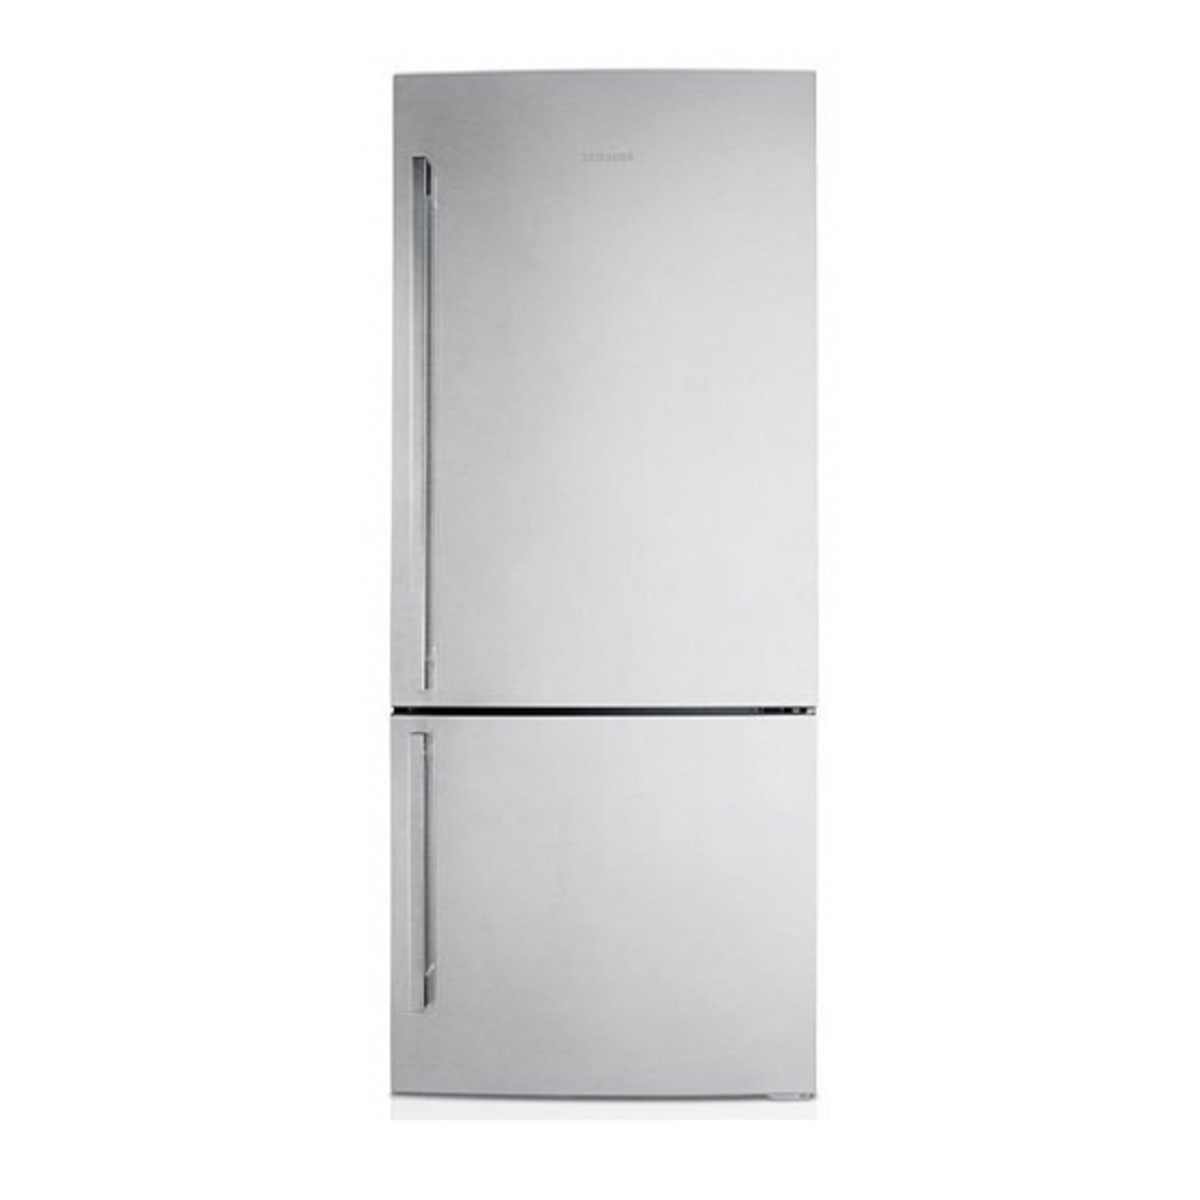 Samsung SRL458ELS 458Litres Bottom Mount Fridge 22917